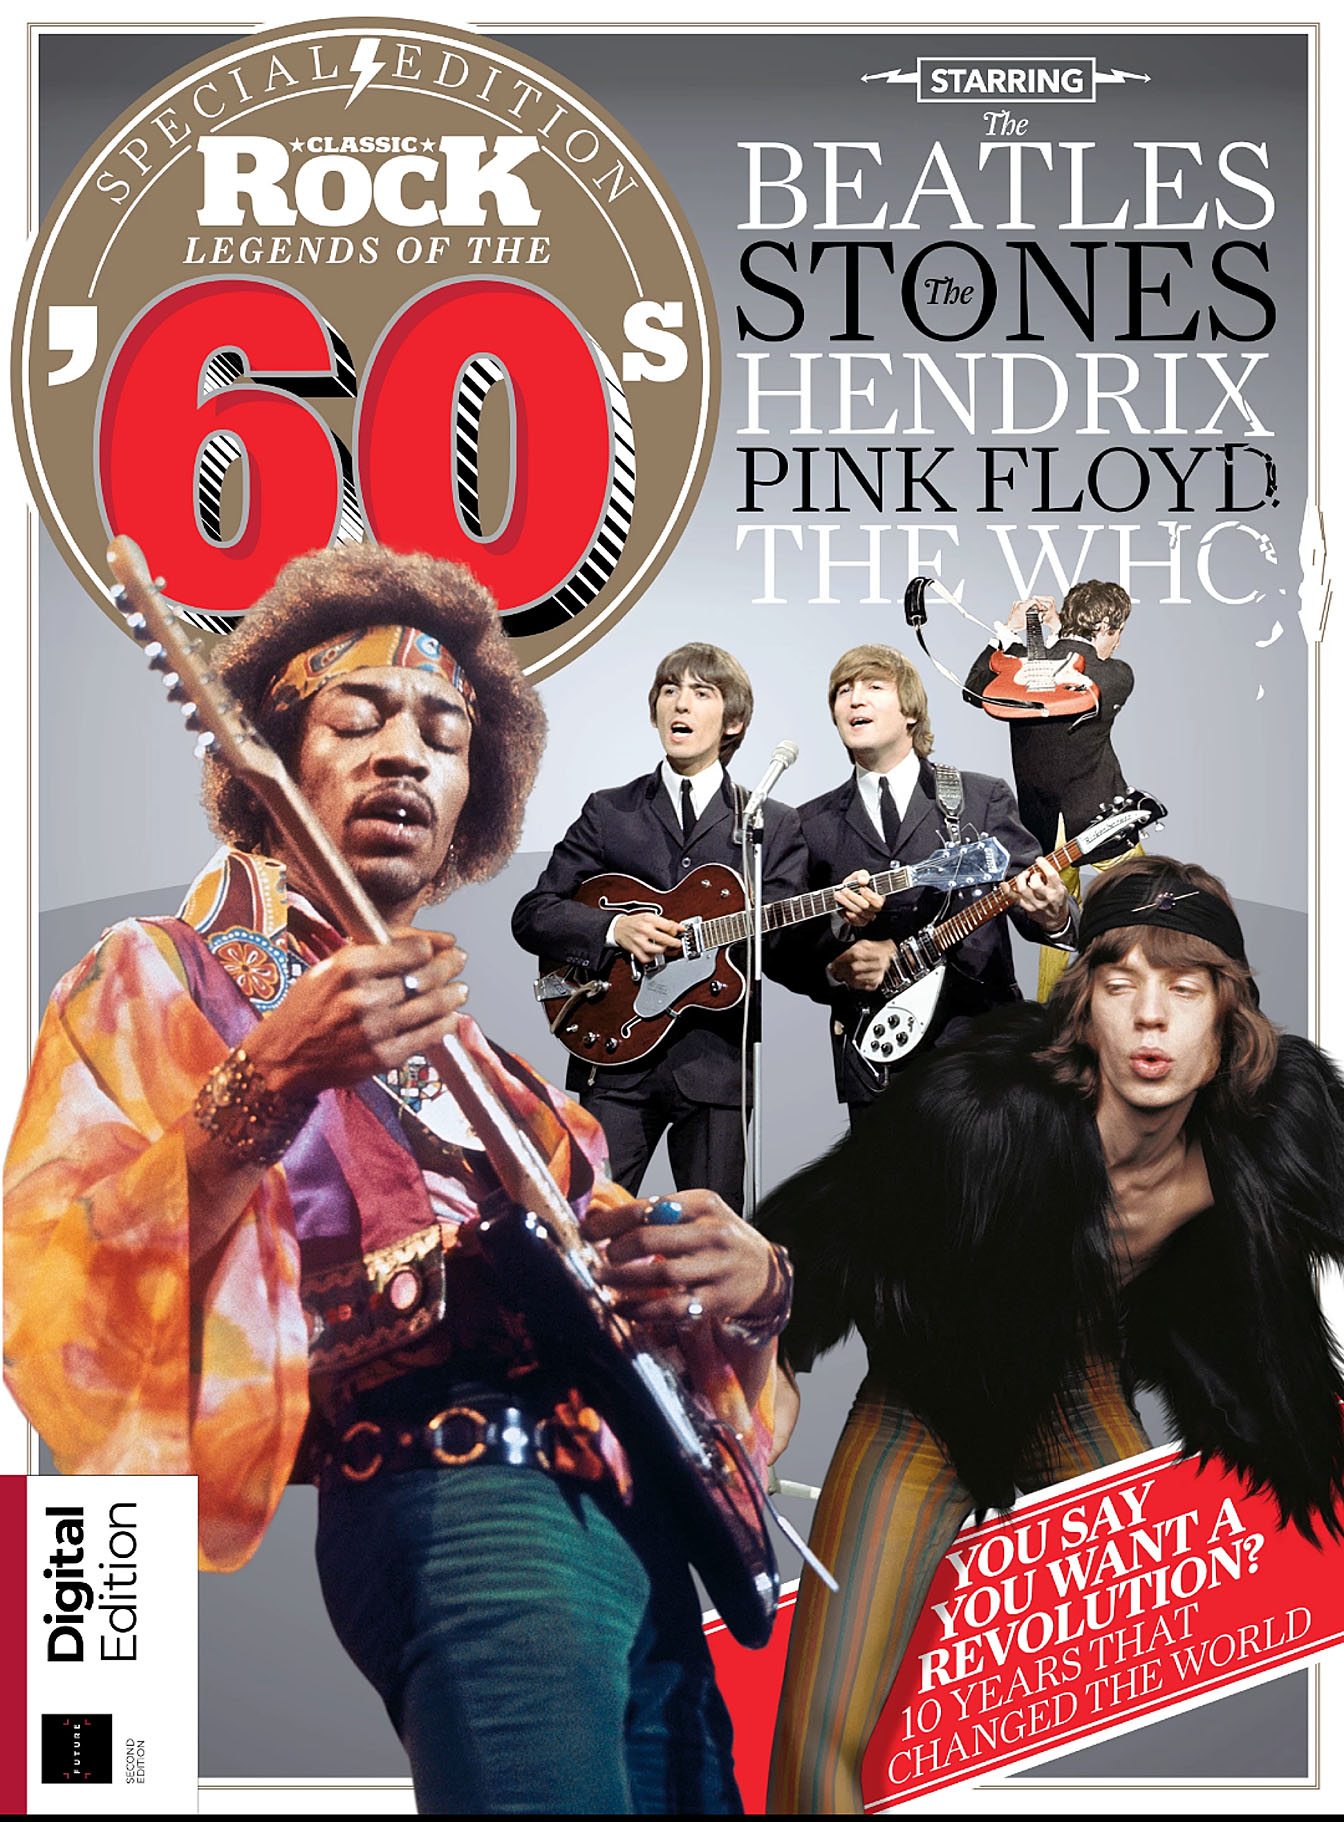 Classic Rock Legends of the 60s 2nd Ed 2019.jpg